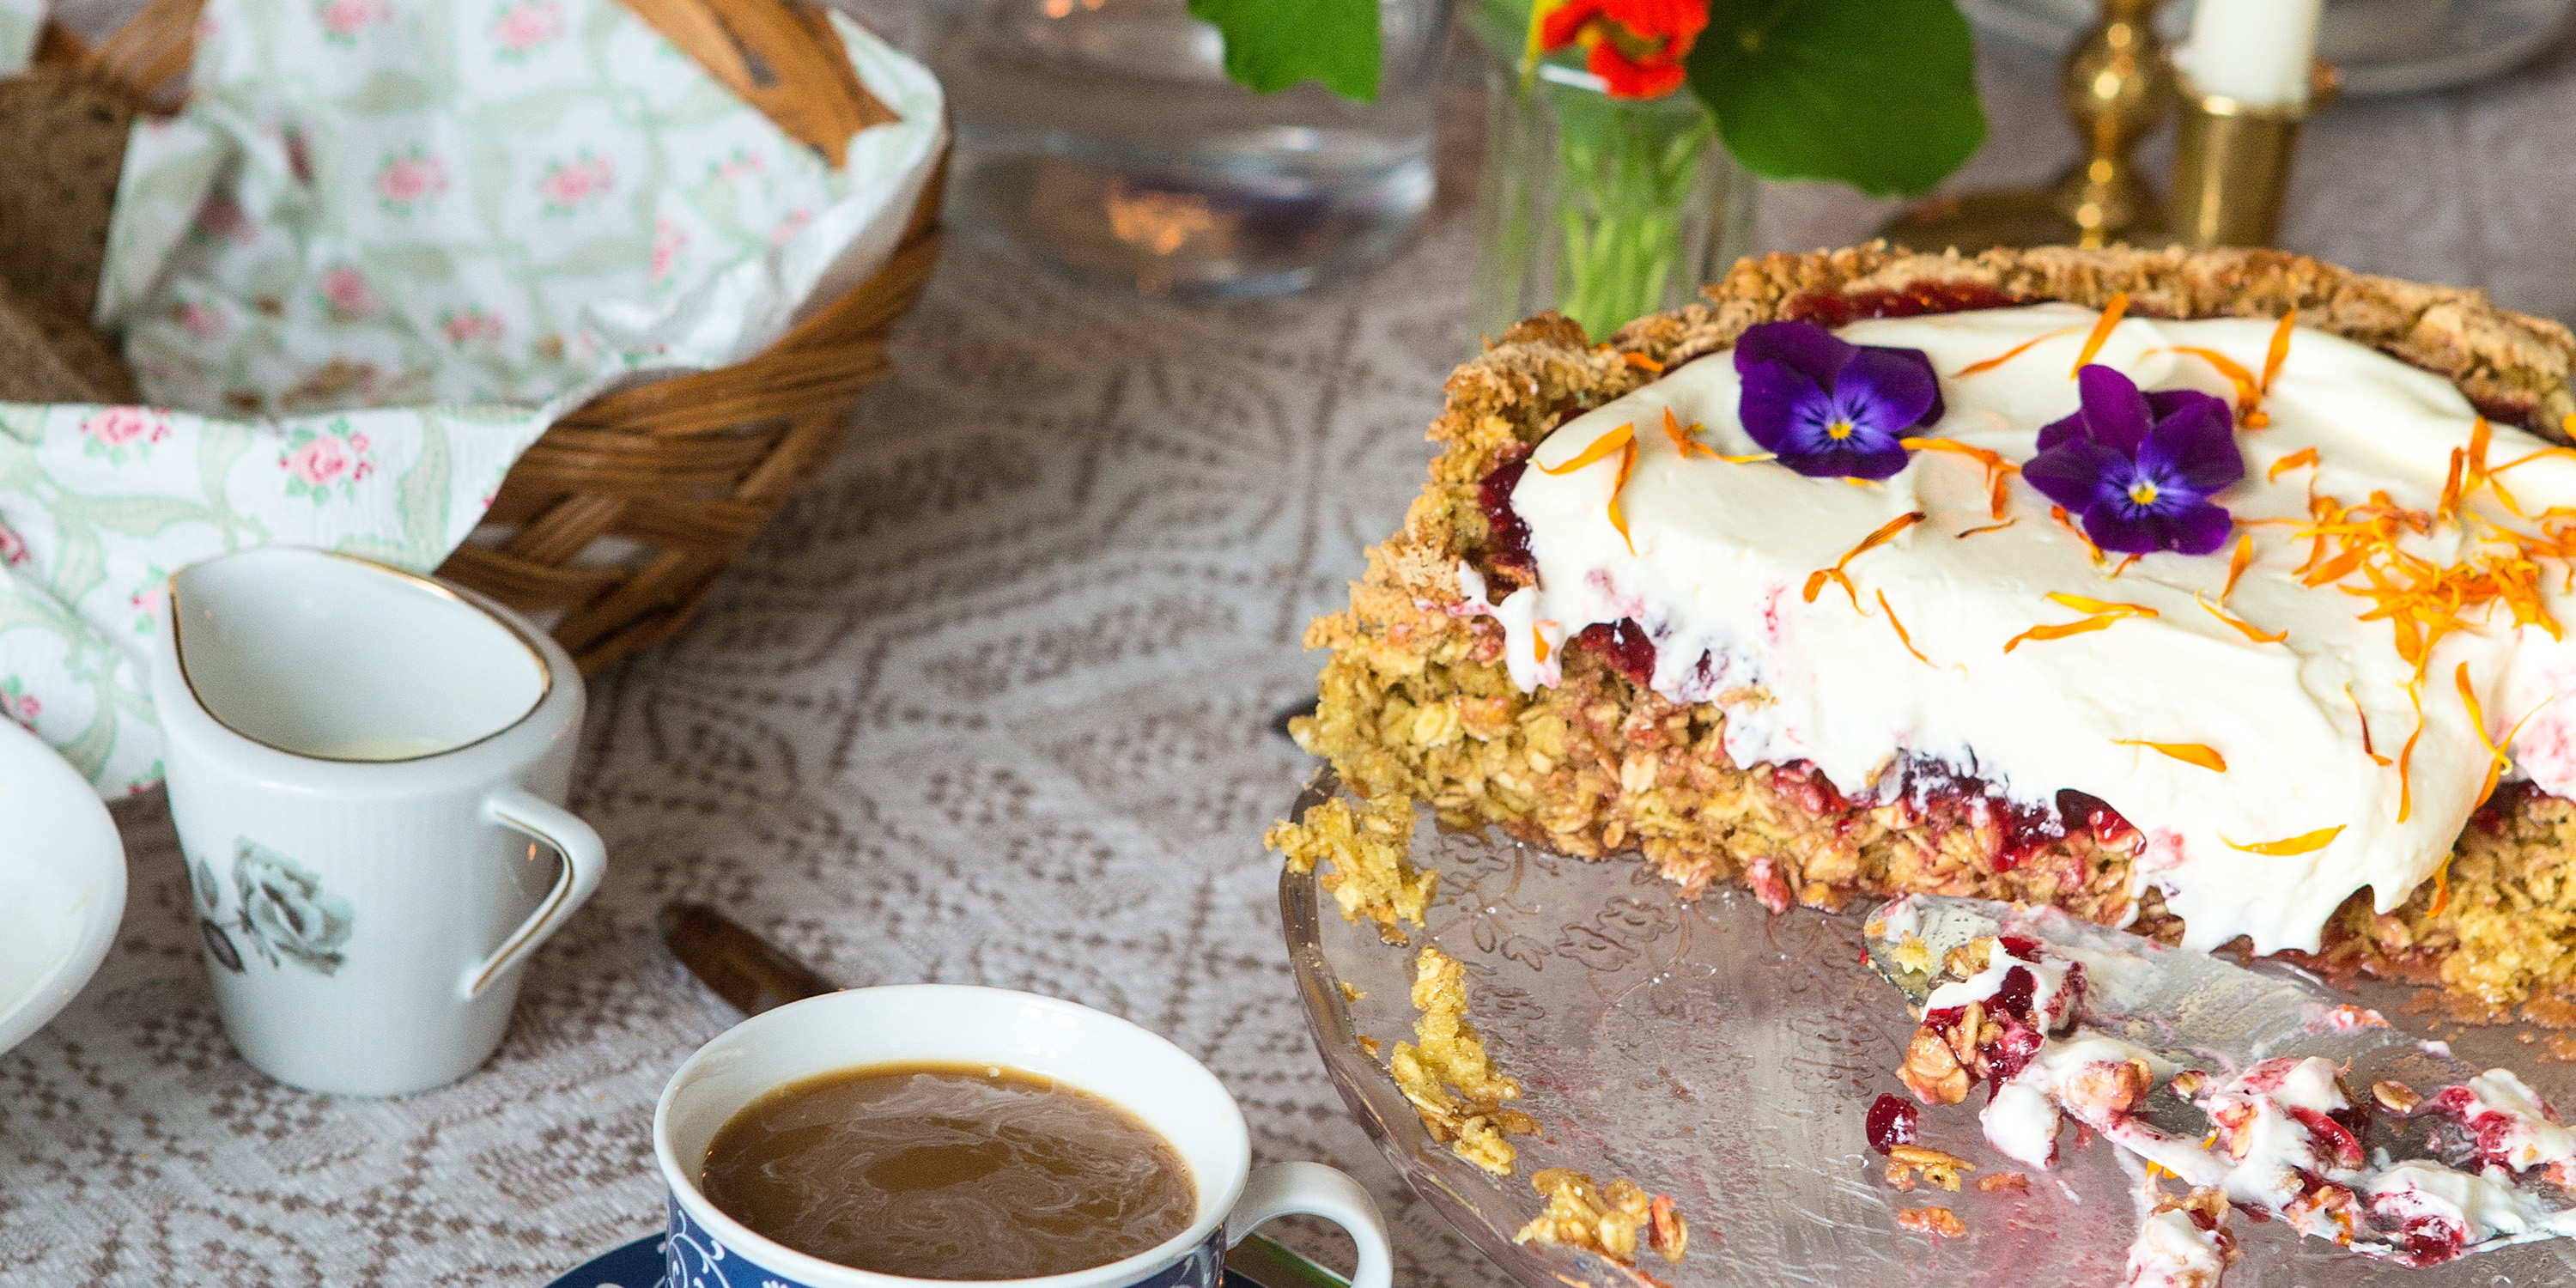 Yummy oatmeal cake at Gulburet. Copyright: WilLee Wright